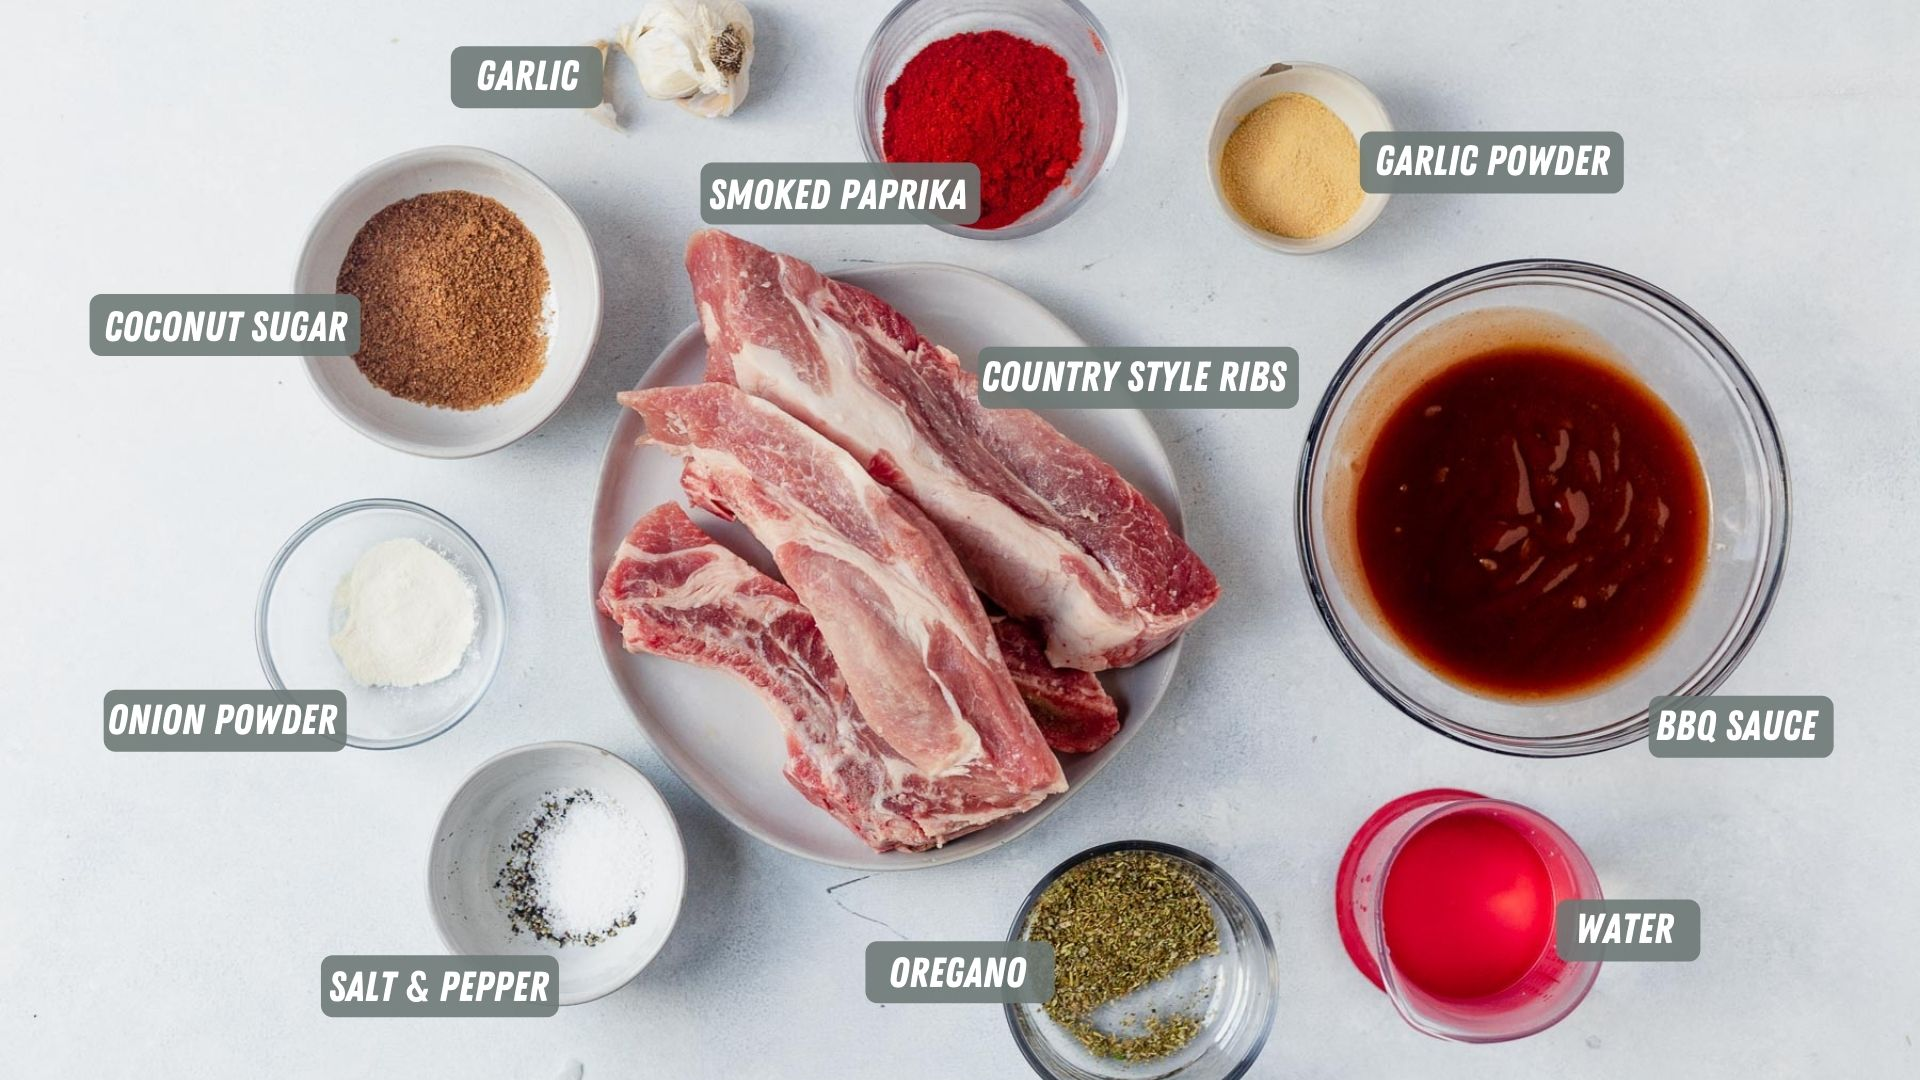 ingredients for instant pot country style ribs measured out on a table